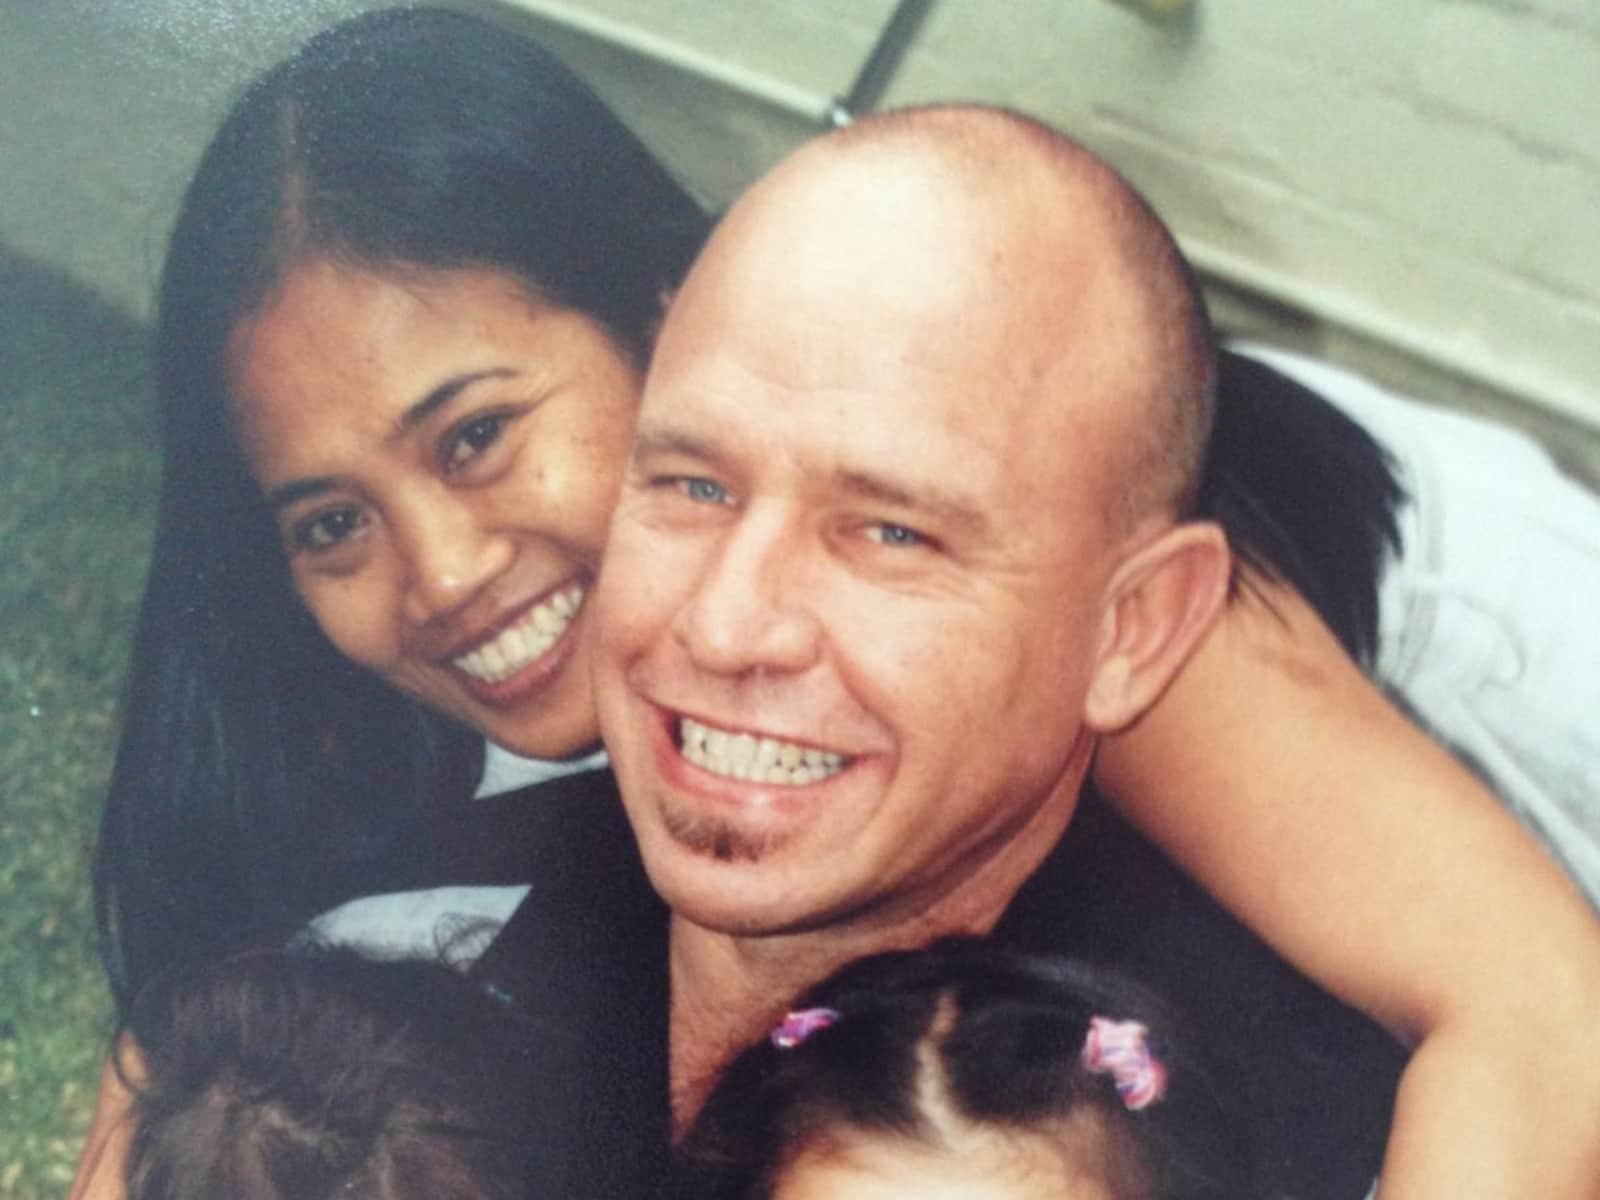 Peter & Tuti from Sydney, New South Wales, Australia